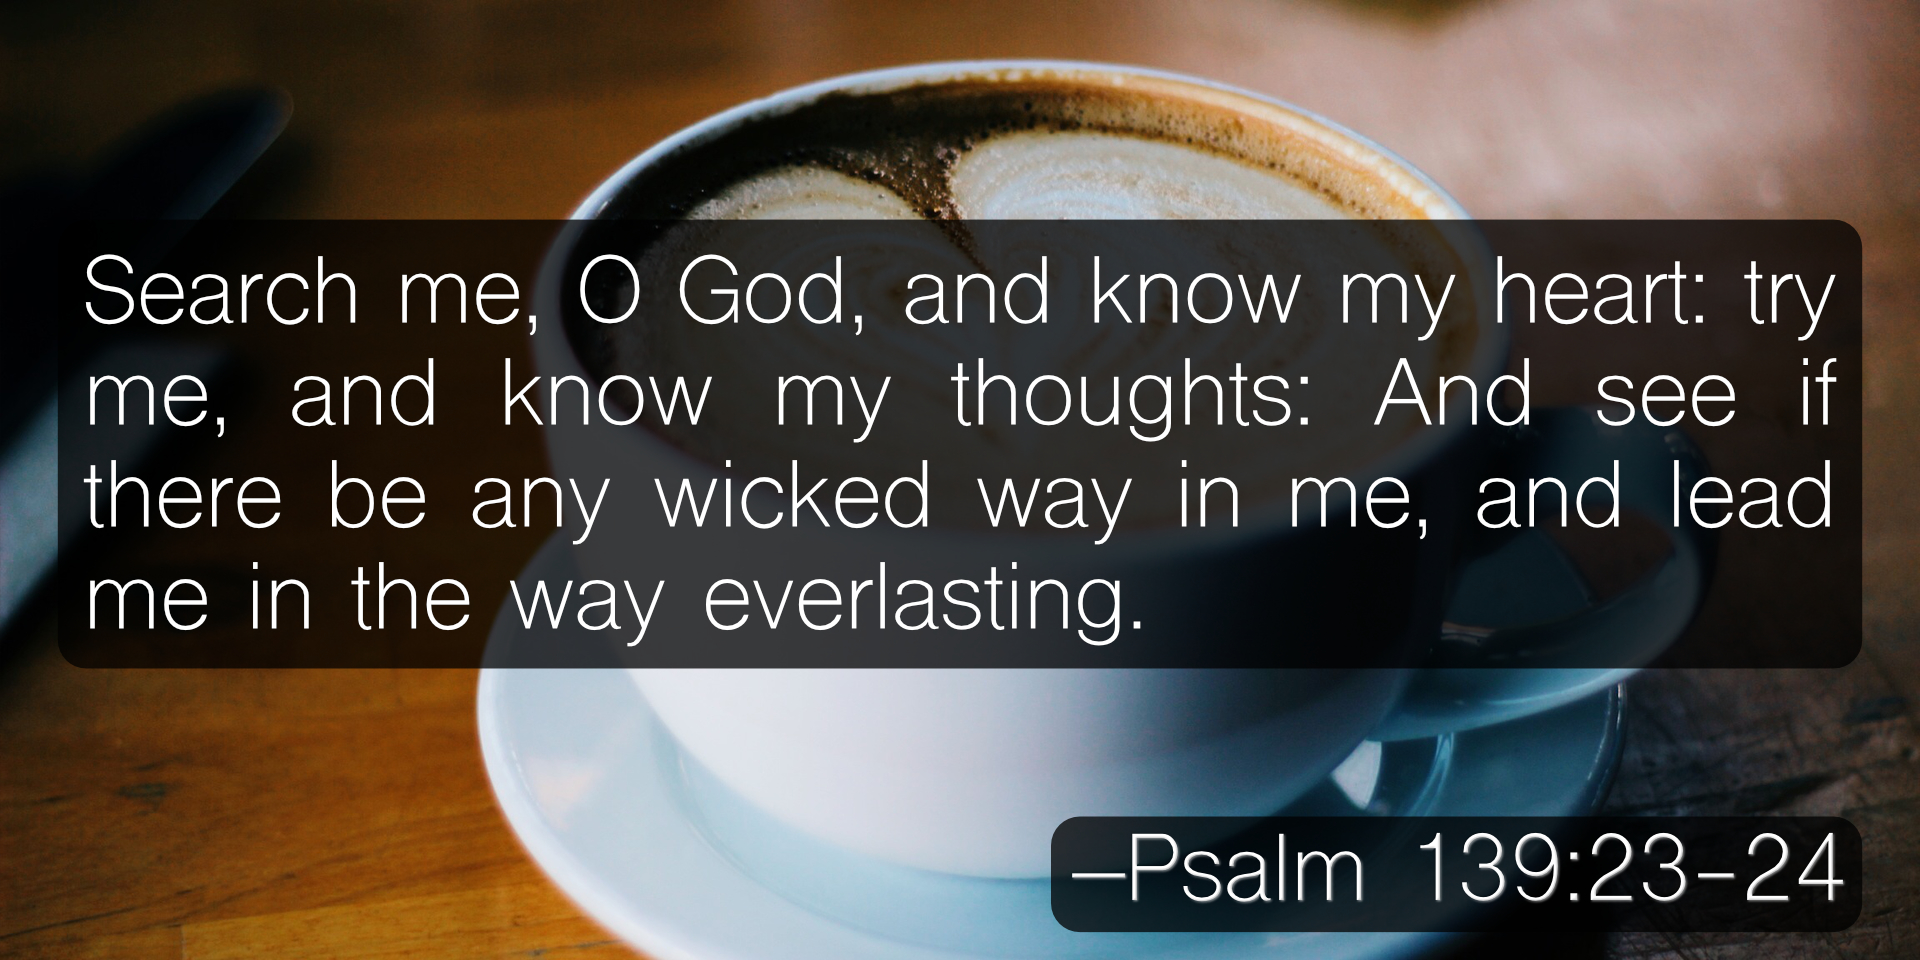 Search me, O God, and know my heart: try me, and know my thoughts: And see if there be any wicked way in me, and lead me in the way everlasting. –Psalm 139:23-24